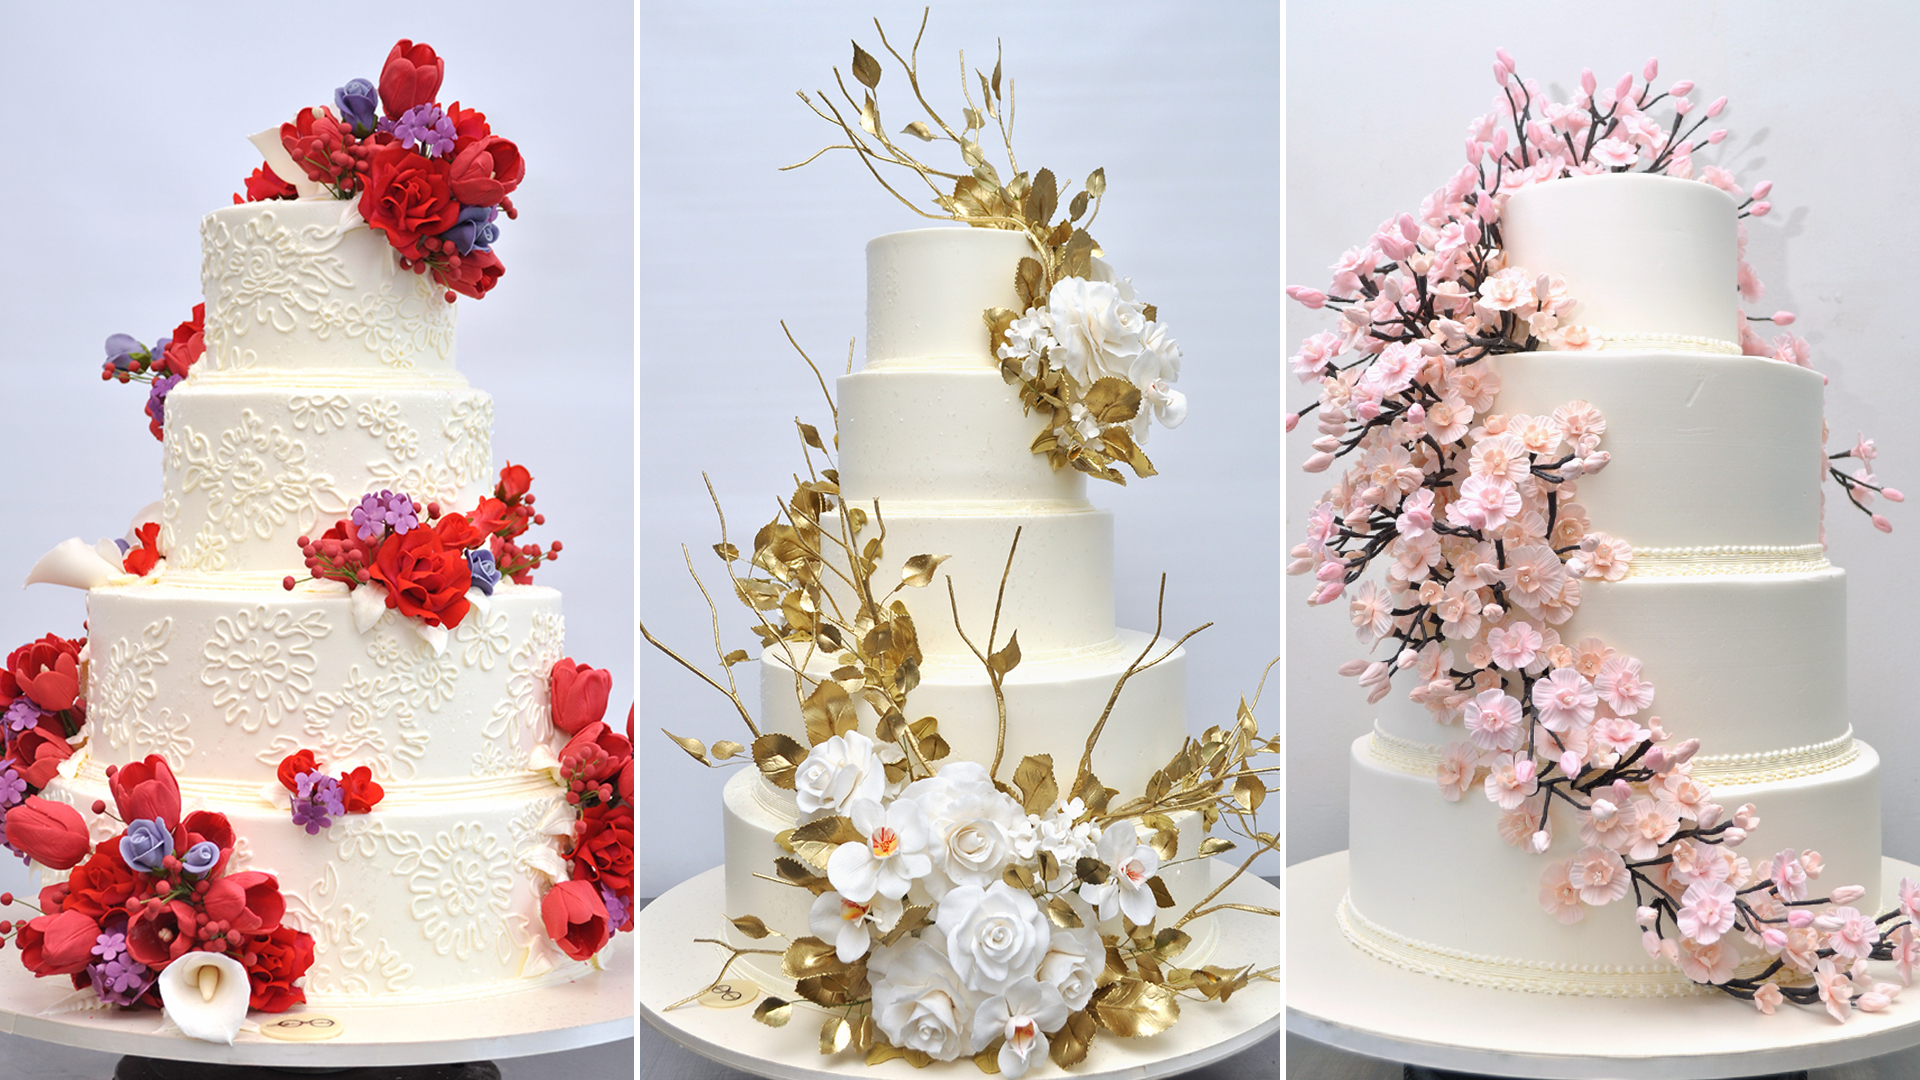 Wedding cakes: Toppers & ideas